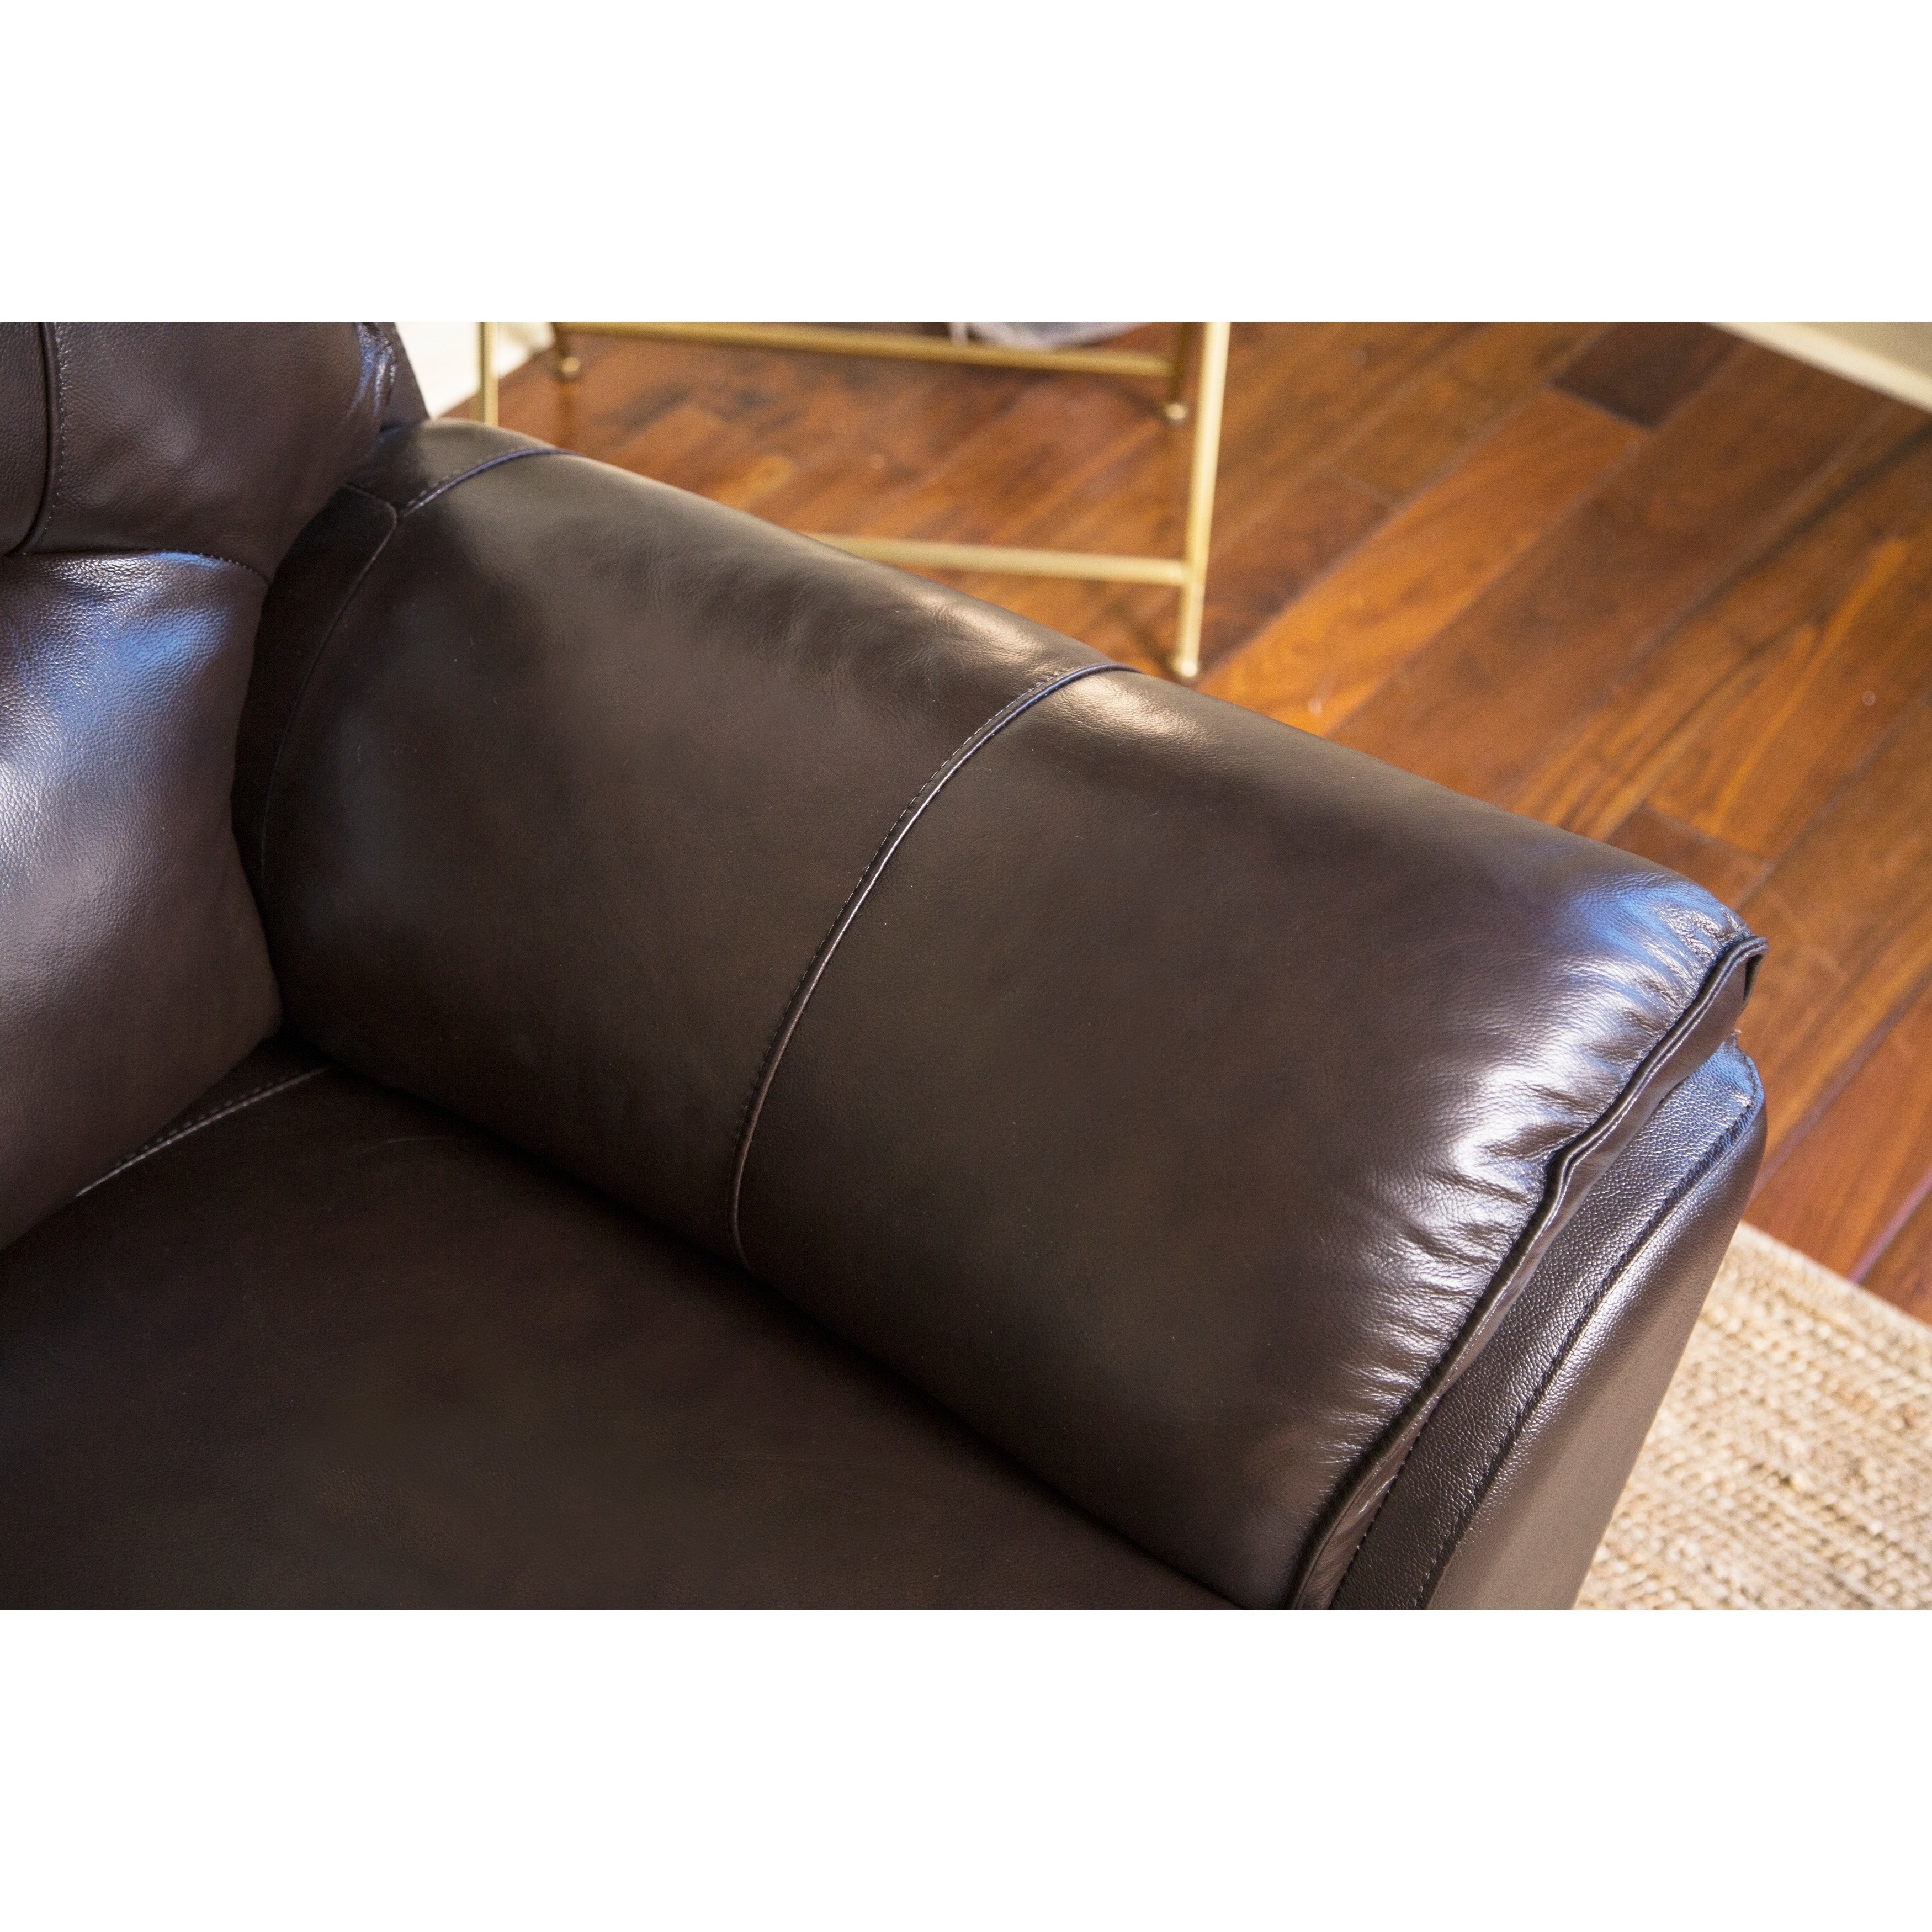 companies wellington leather furniture promote american. Abbyson Caprice 3-piece Top Grain Leather Sofa Set - Free Shipping Today Overstock 16919508 Companies Wellington Furniture Promote American